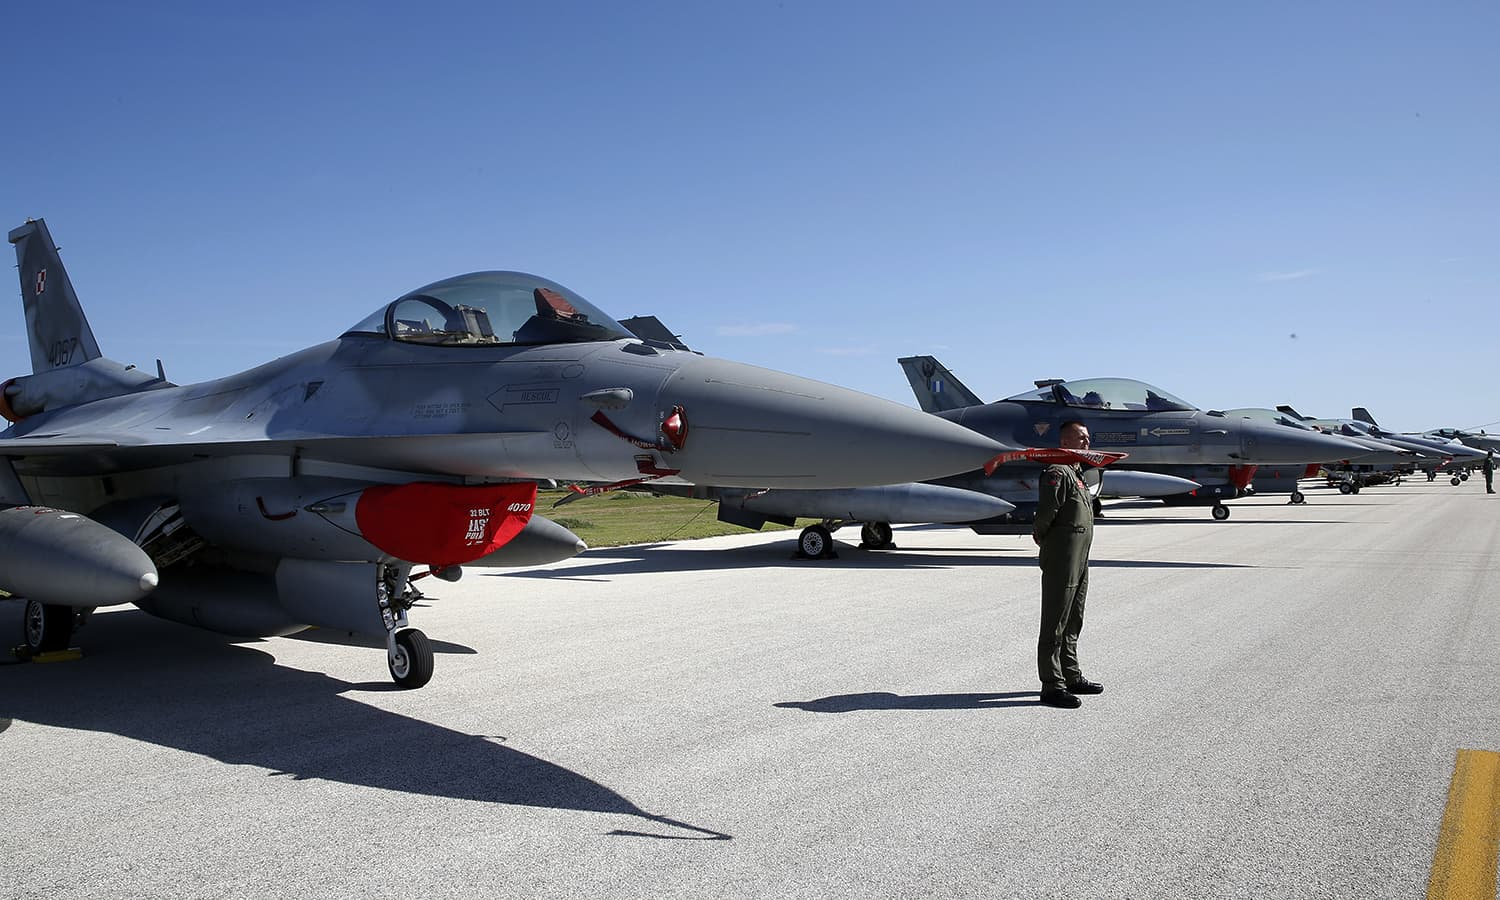 An F-16 jet fighter, foreground, is parked on the tarmac during the opening ceremony of Nato Trident Juncture exercise 2015, in Trapani, Italy. — AP